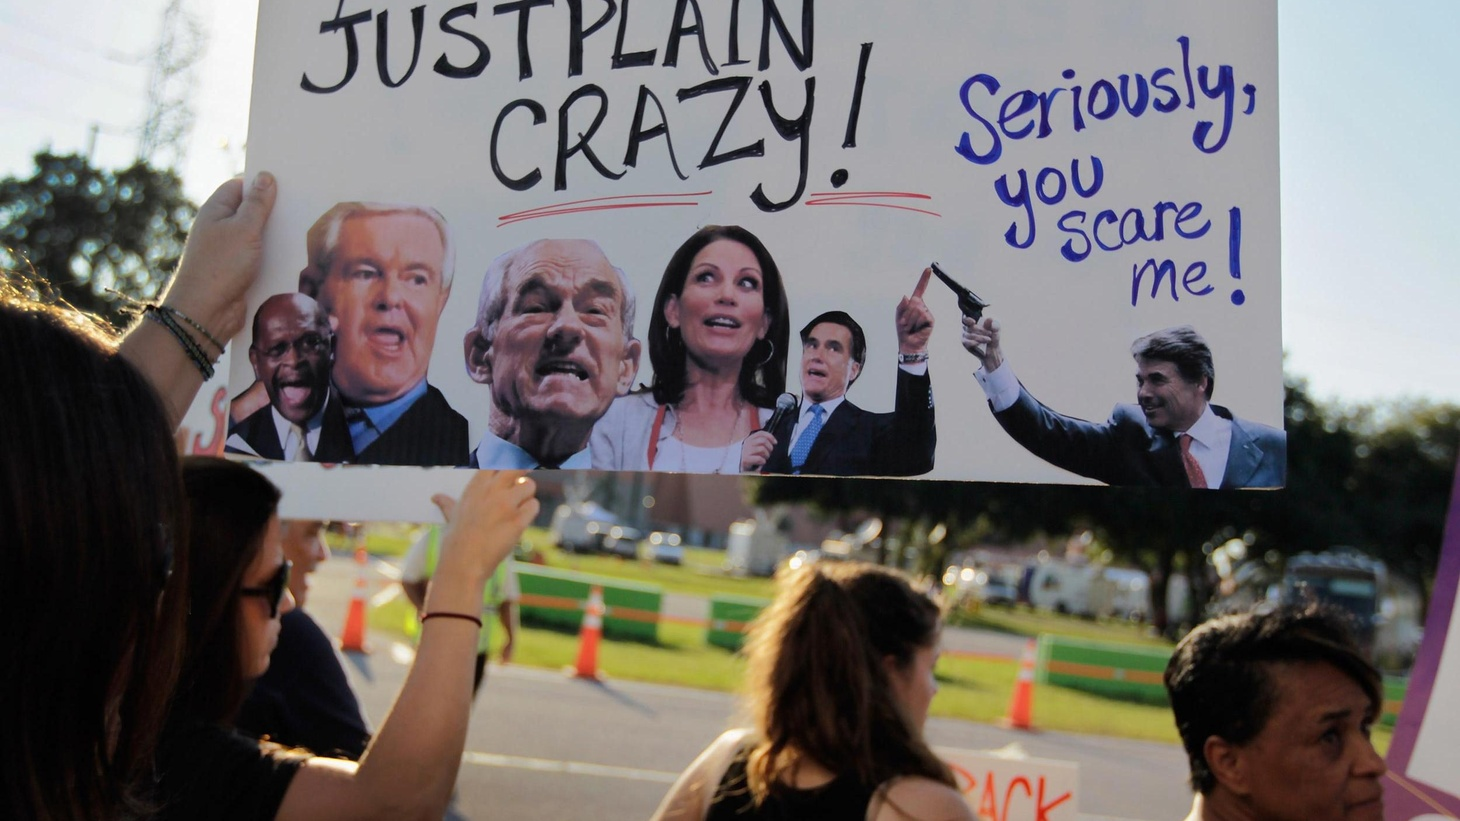 GOP presidential candidates faced a Tea Party crowd last night. We hear what they said and ask about Tea Party influence in deciding the nominee of a divided Republican Party.